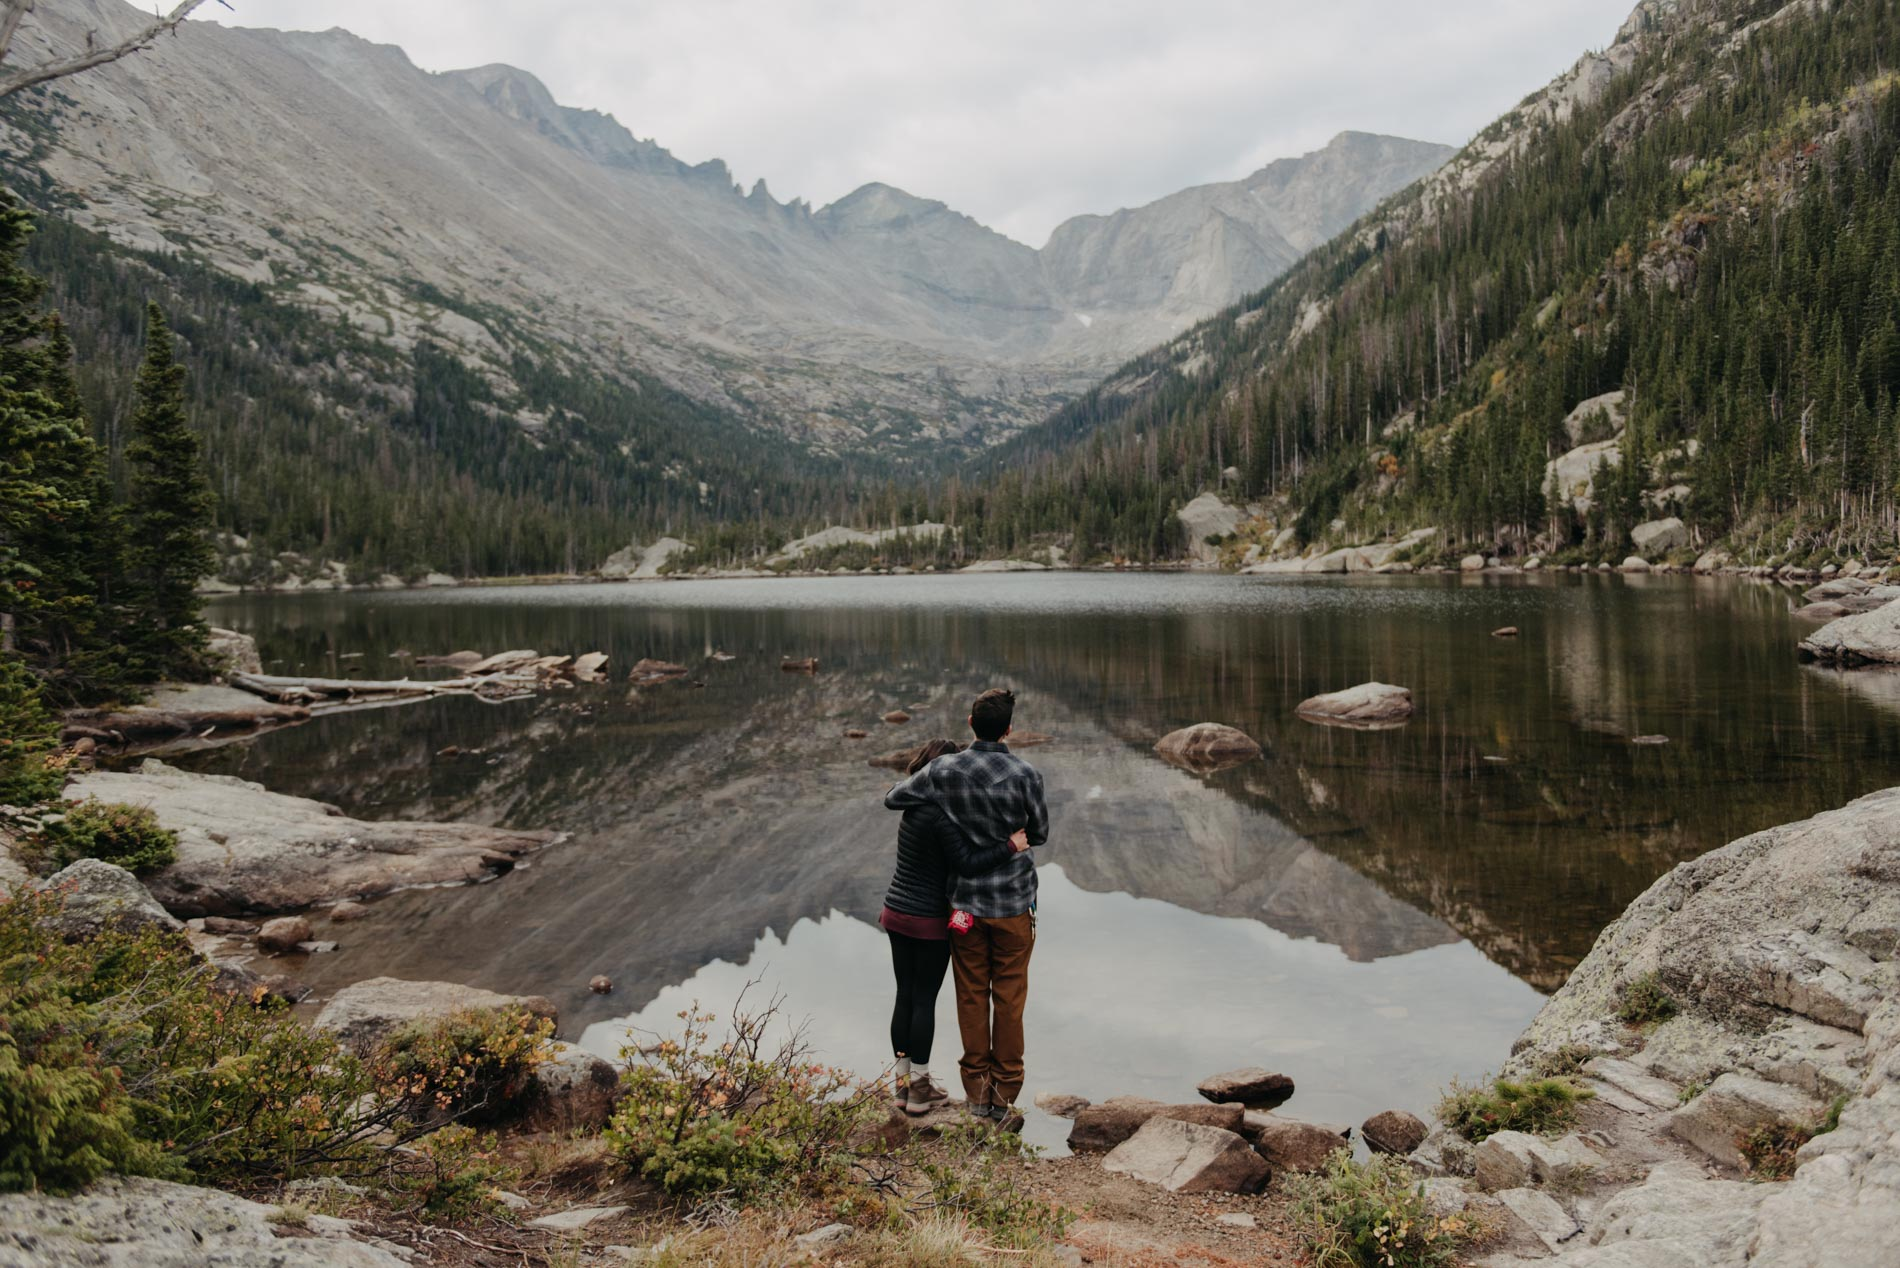 Engagement-session-colorado-engagement-session-Adventurous-Wedding-Photography-Adventurous-Wedding-Photograph-Adventure-Elopement-Photographer-Adventurous-Elopement-Photograph-Adventurous-Elopement-Photographer-Adventurous-Destination-Elopement-Photographer-Destination-Elopement-Photography-Destination-Elopement-Packages-Rocky-Mountain-Elopement-Rocky-Mountain-National-Park-Photographer-Rocky-Mountain-National-Park-Photography-Rocky+Mountain+National+Park+Elopement+Rocky-Mountain-National-Park-Wedding-RMNP-Elopement-RMNP-Wedding-RMNP-Photographer-002